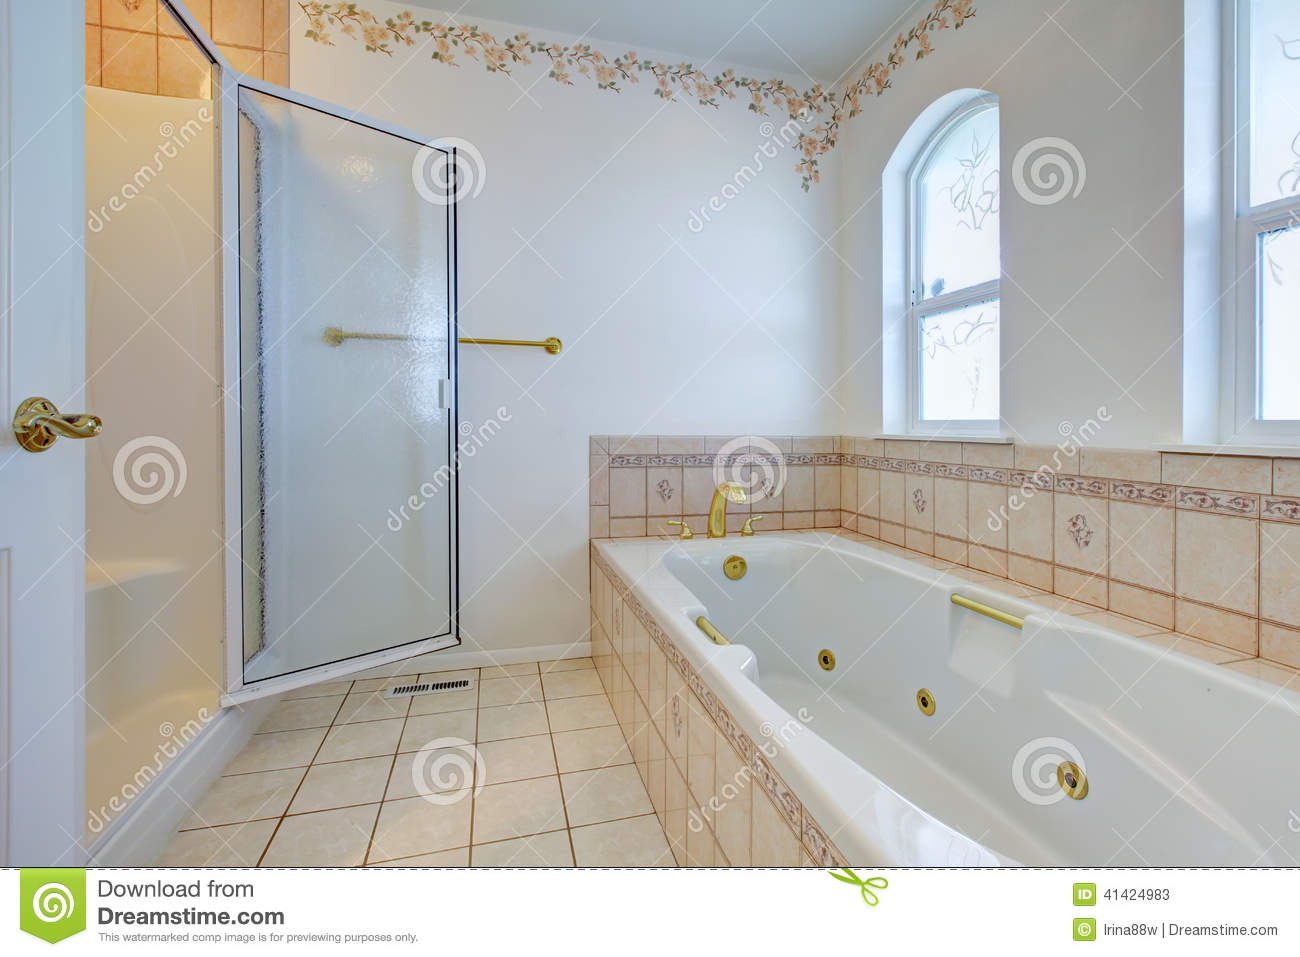 Refreshing Bathroom Interior With Tile Wall Trim Stock Image - Image ...